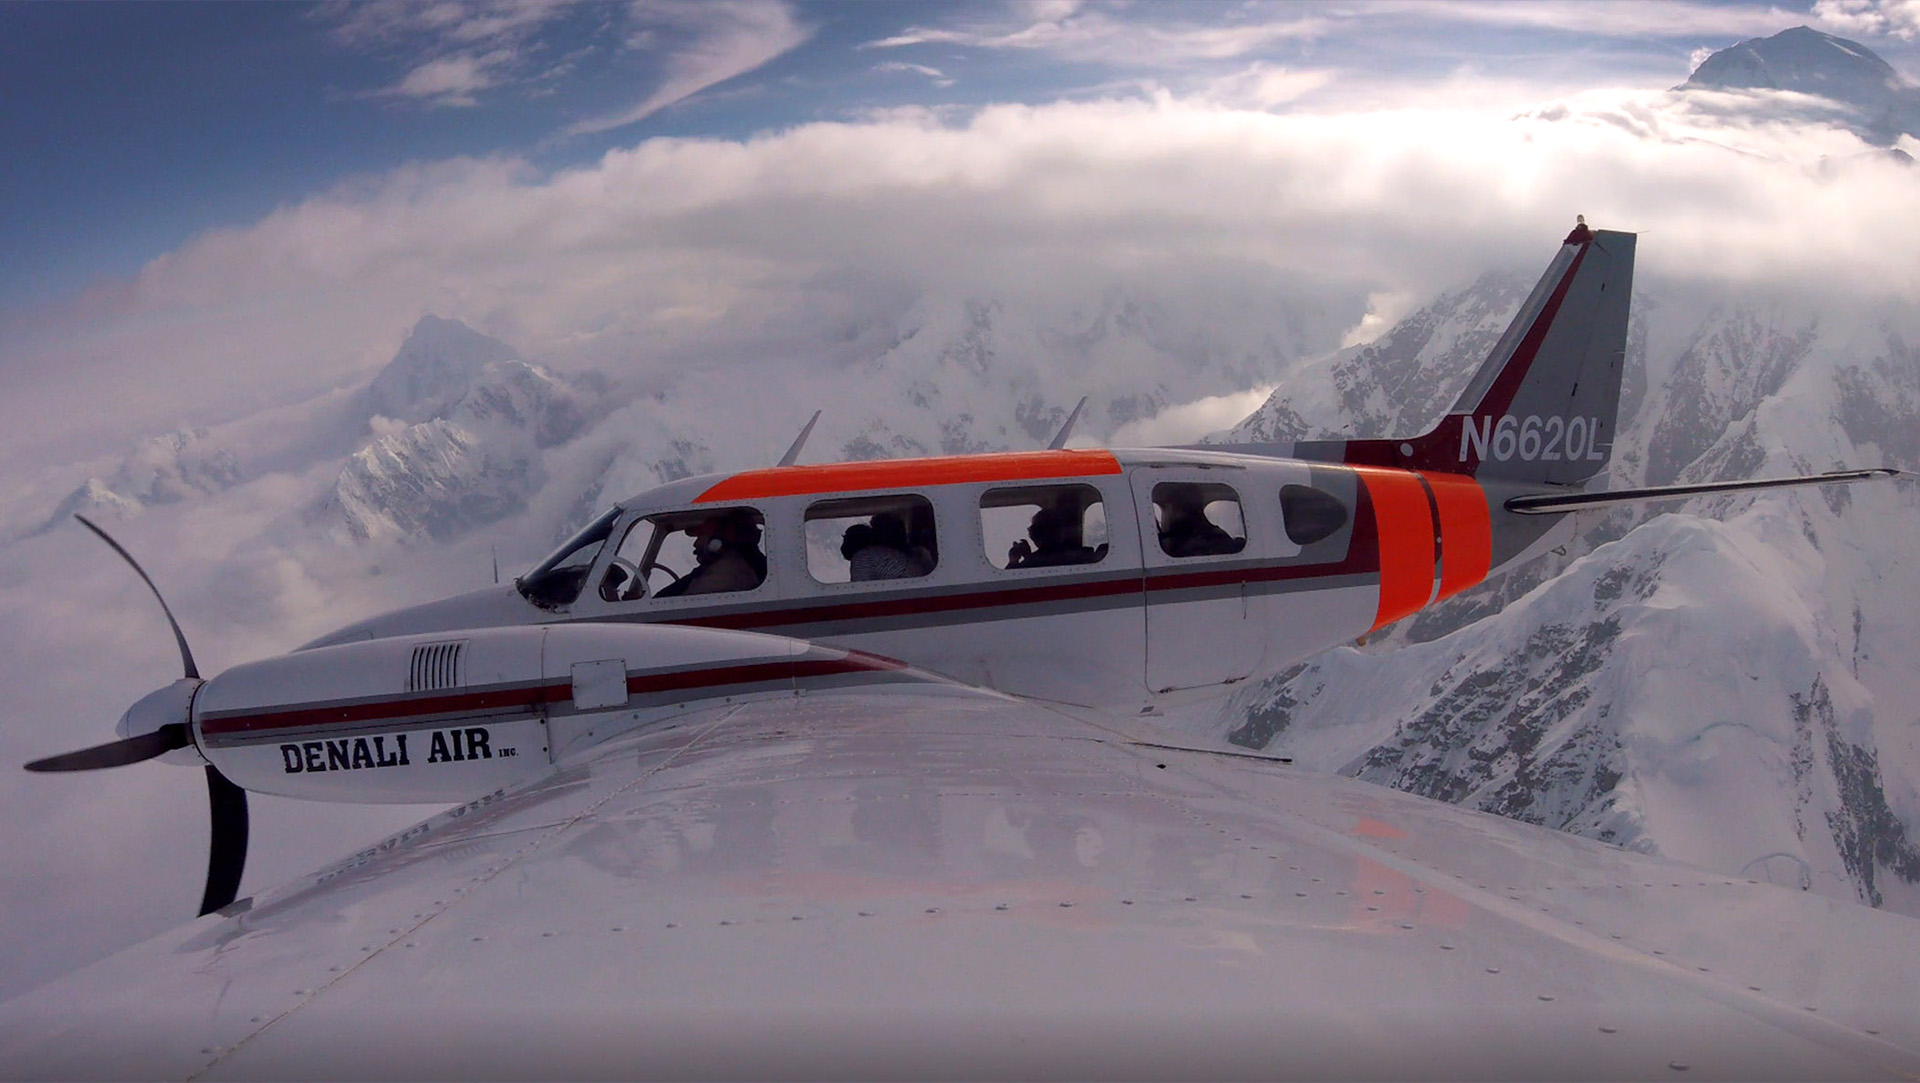 Aviation Photography in the Snow - Best Alaska Photographer | Alaskafoto